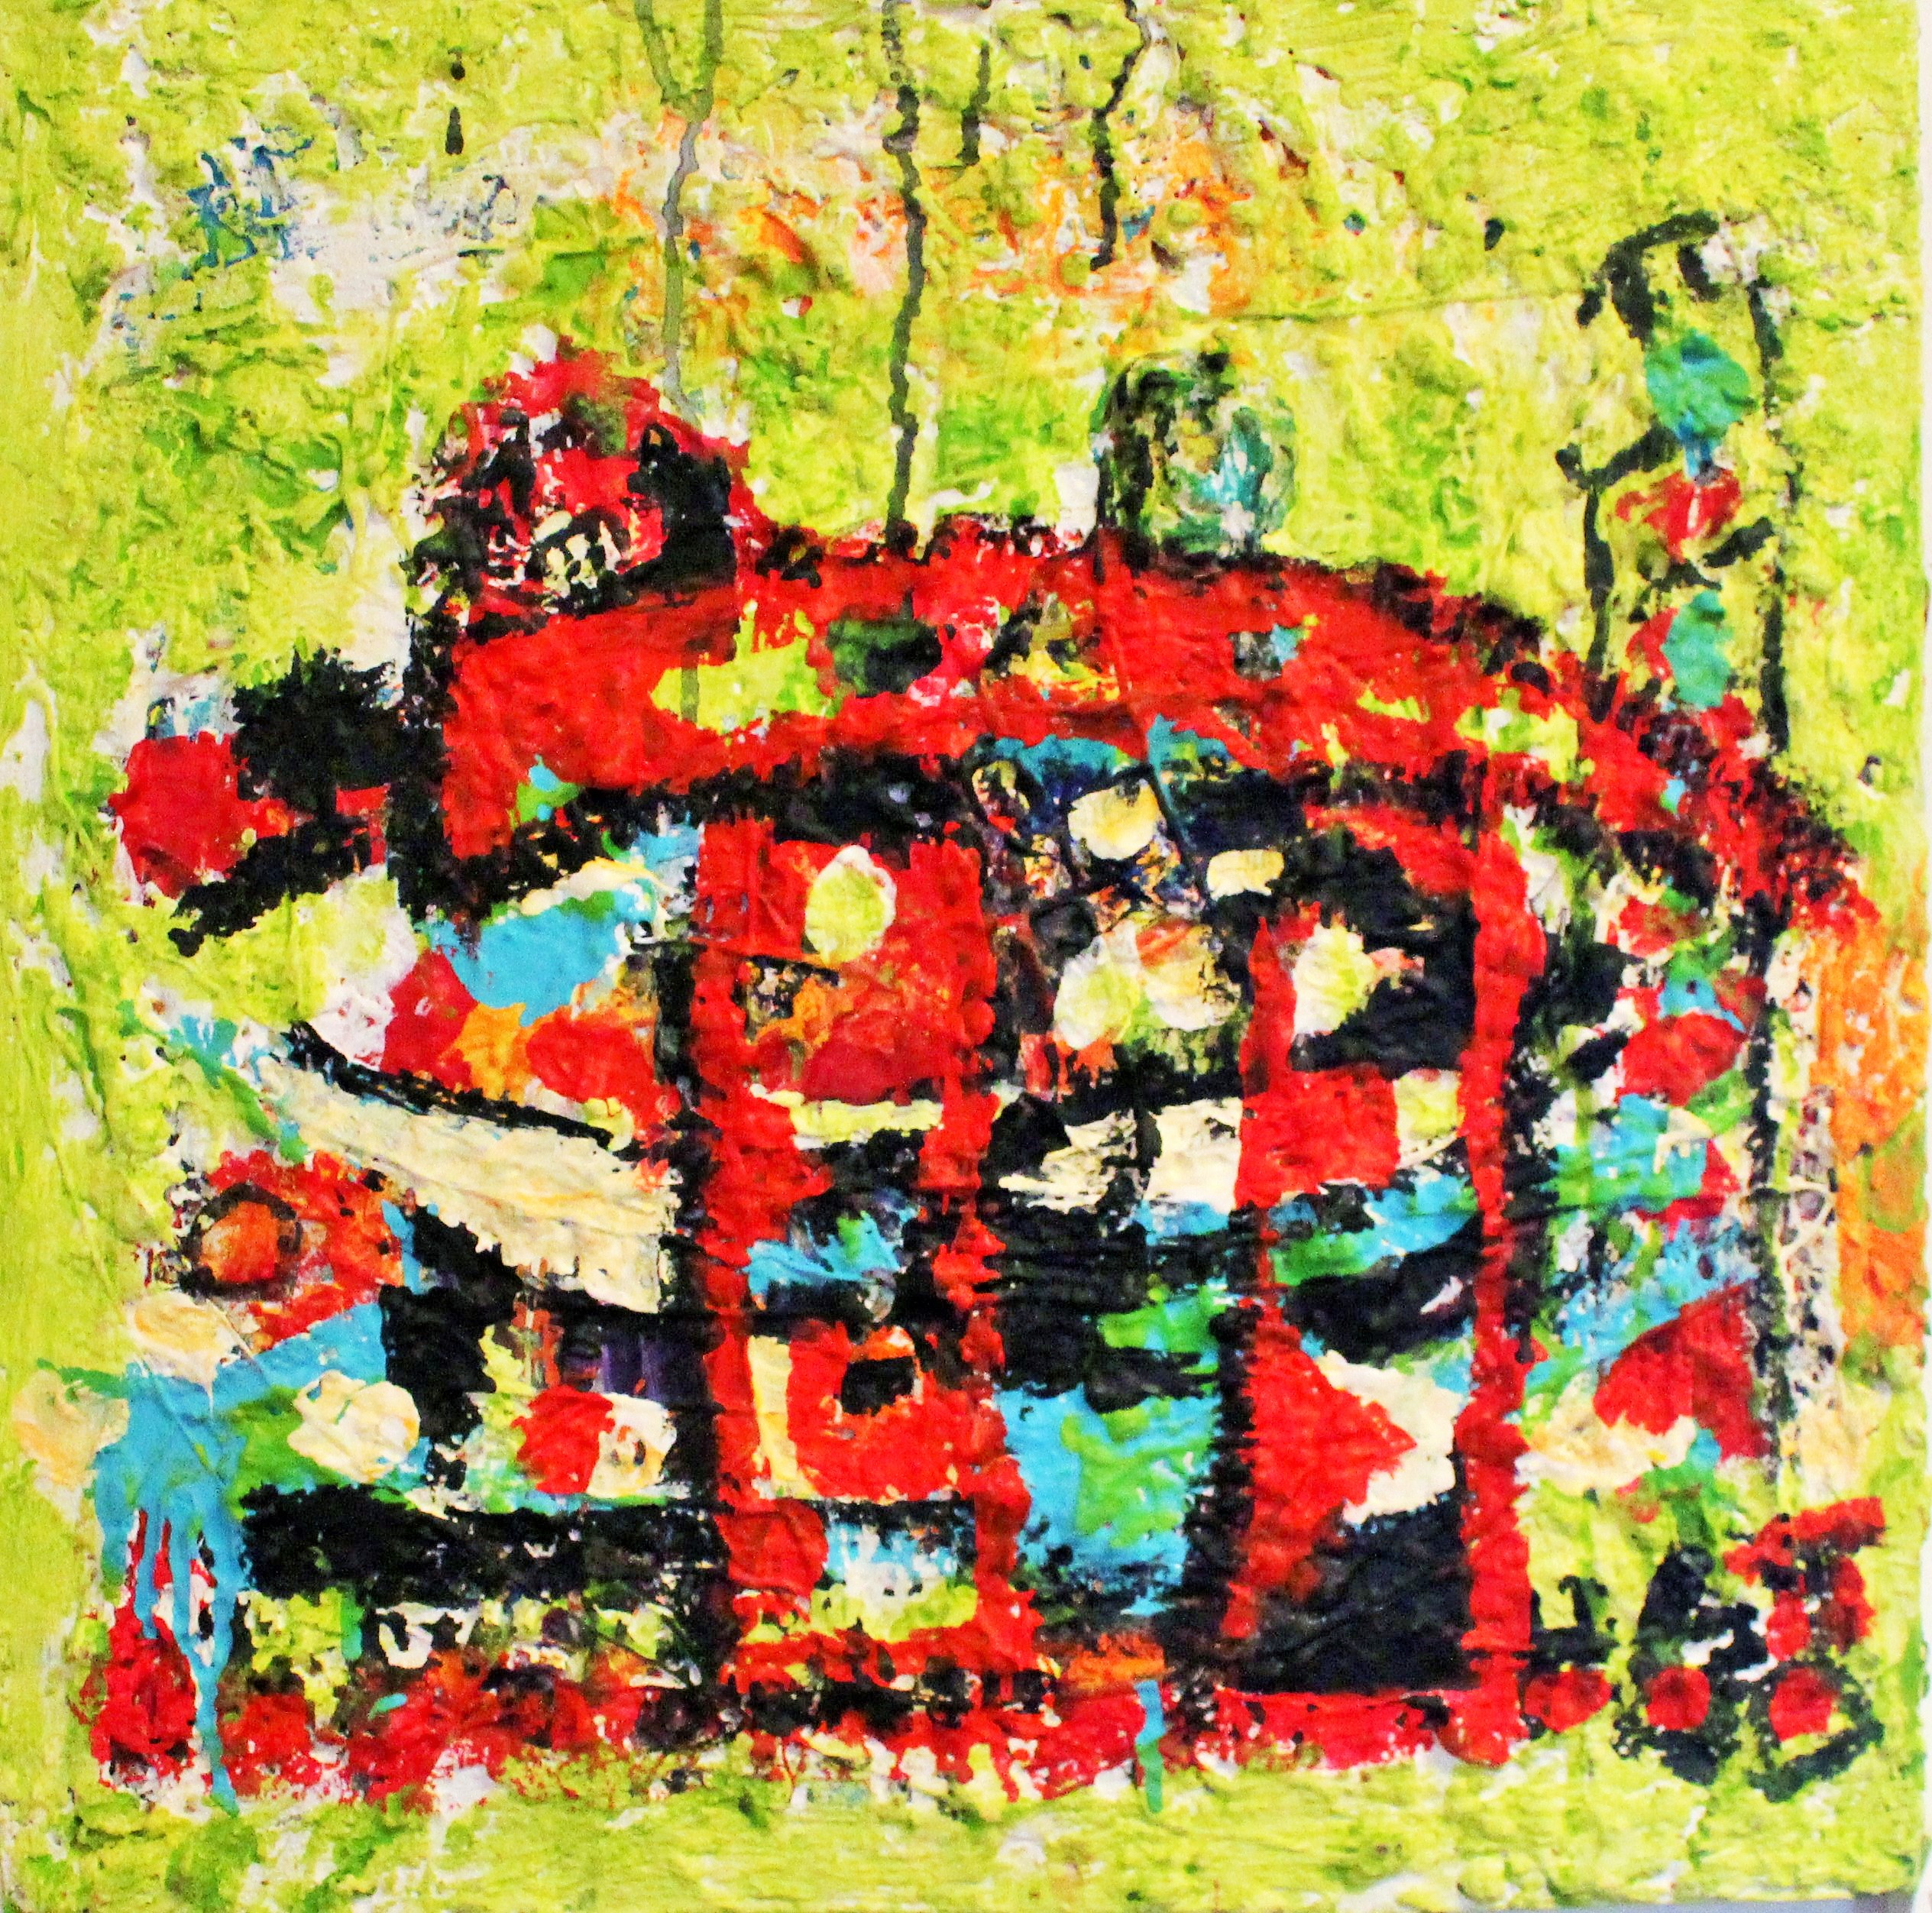 THE MYSTERY OF Pi YOU AND ME artwork by Hilde Gustava Ovesen - art listed for sale on Artplode